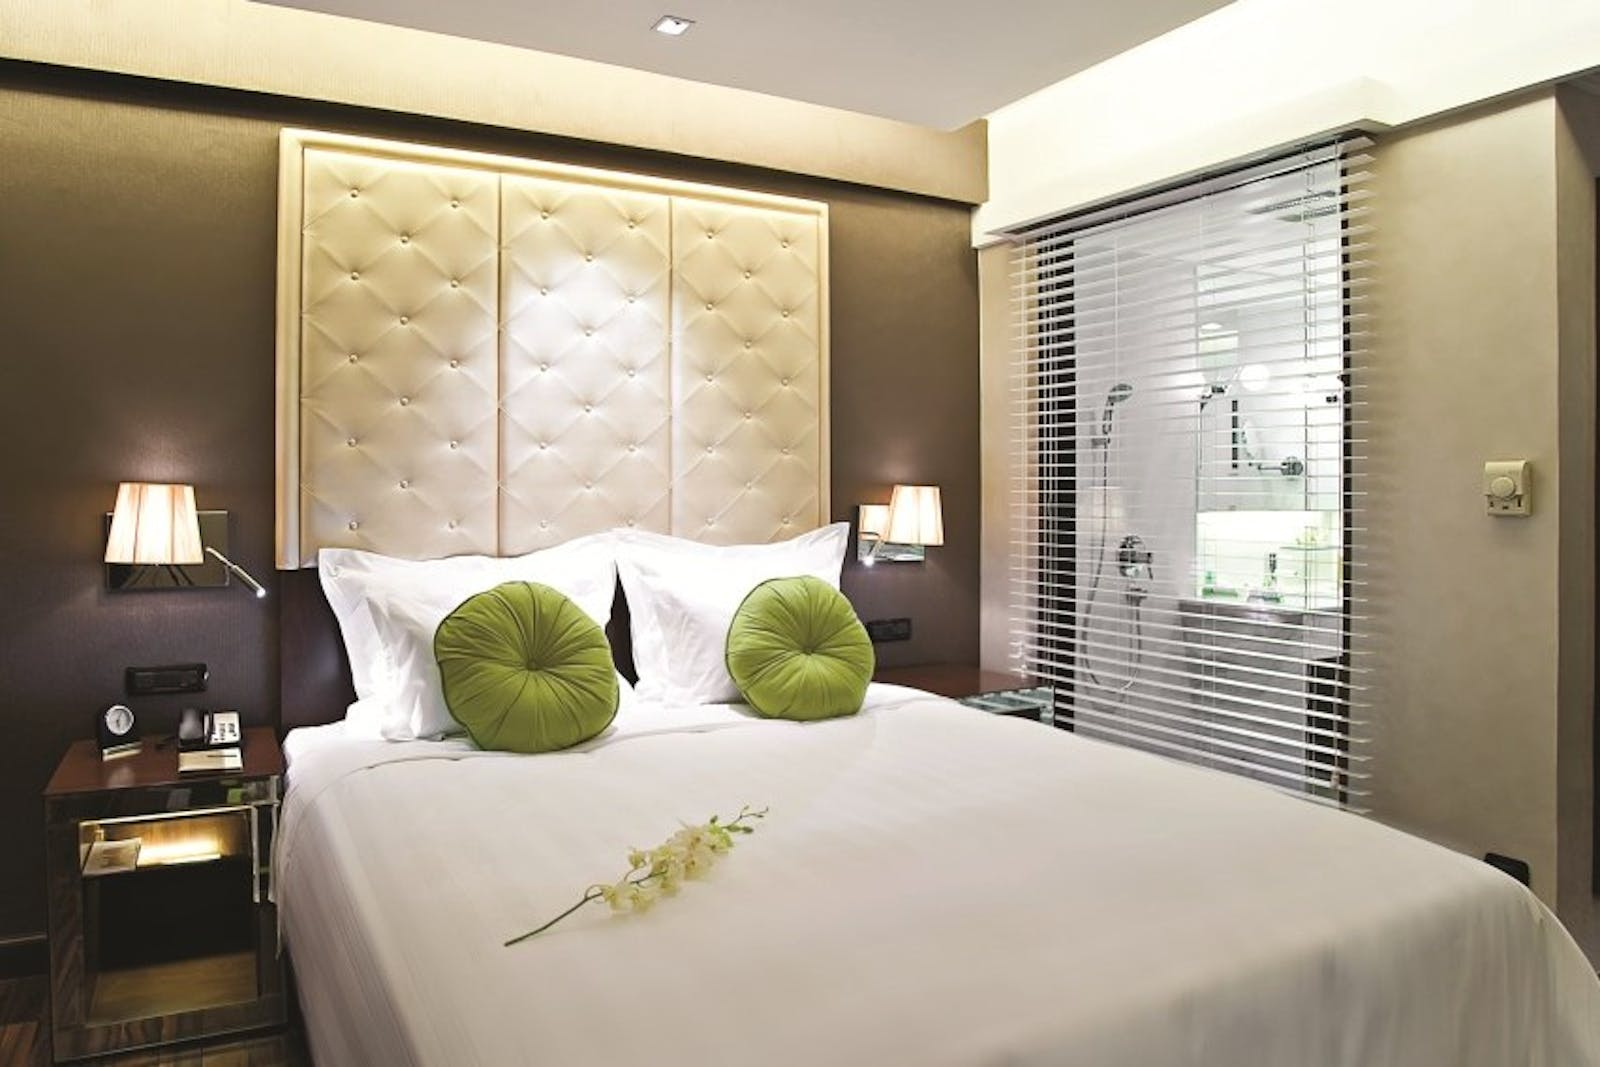 Superior Deluxe Room at Movenpick Hotel Hanoi